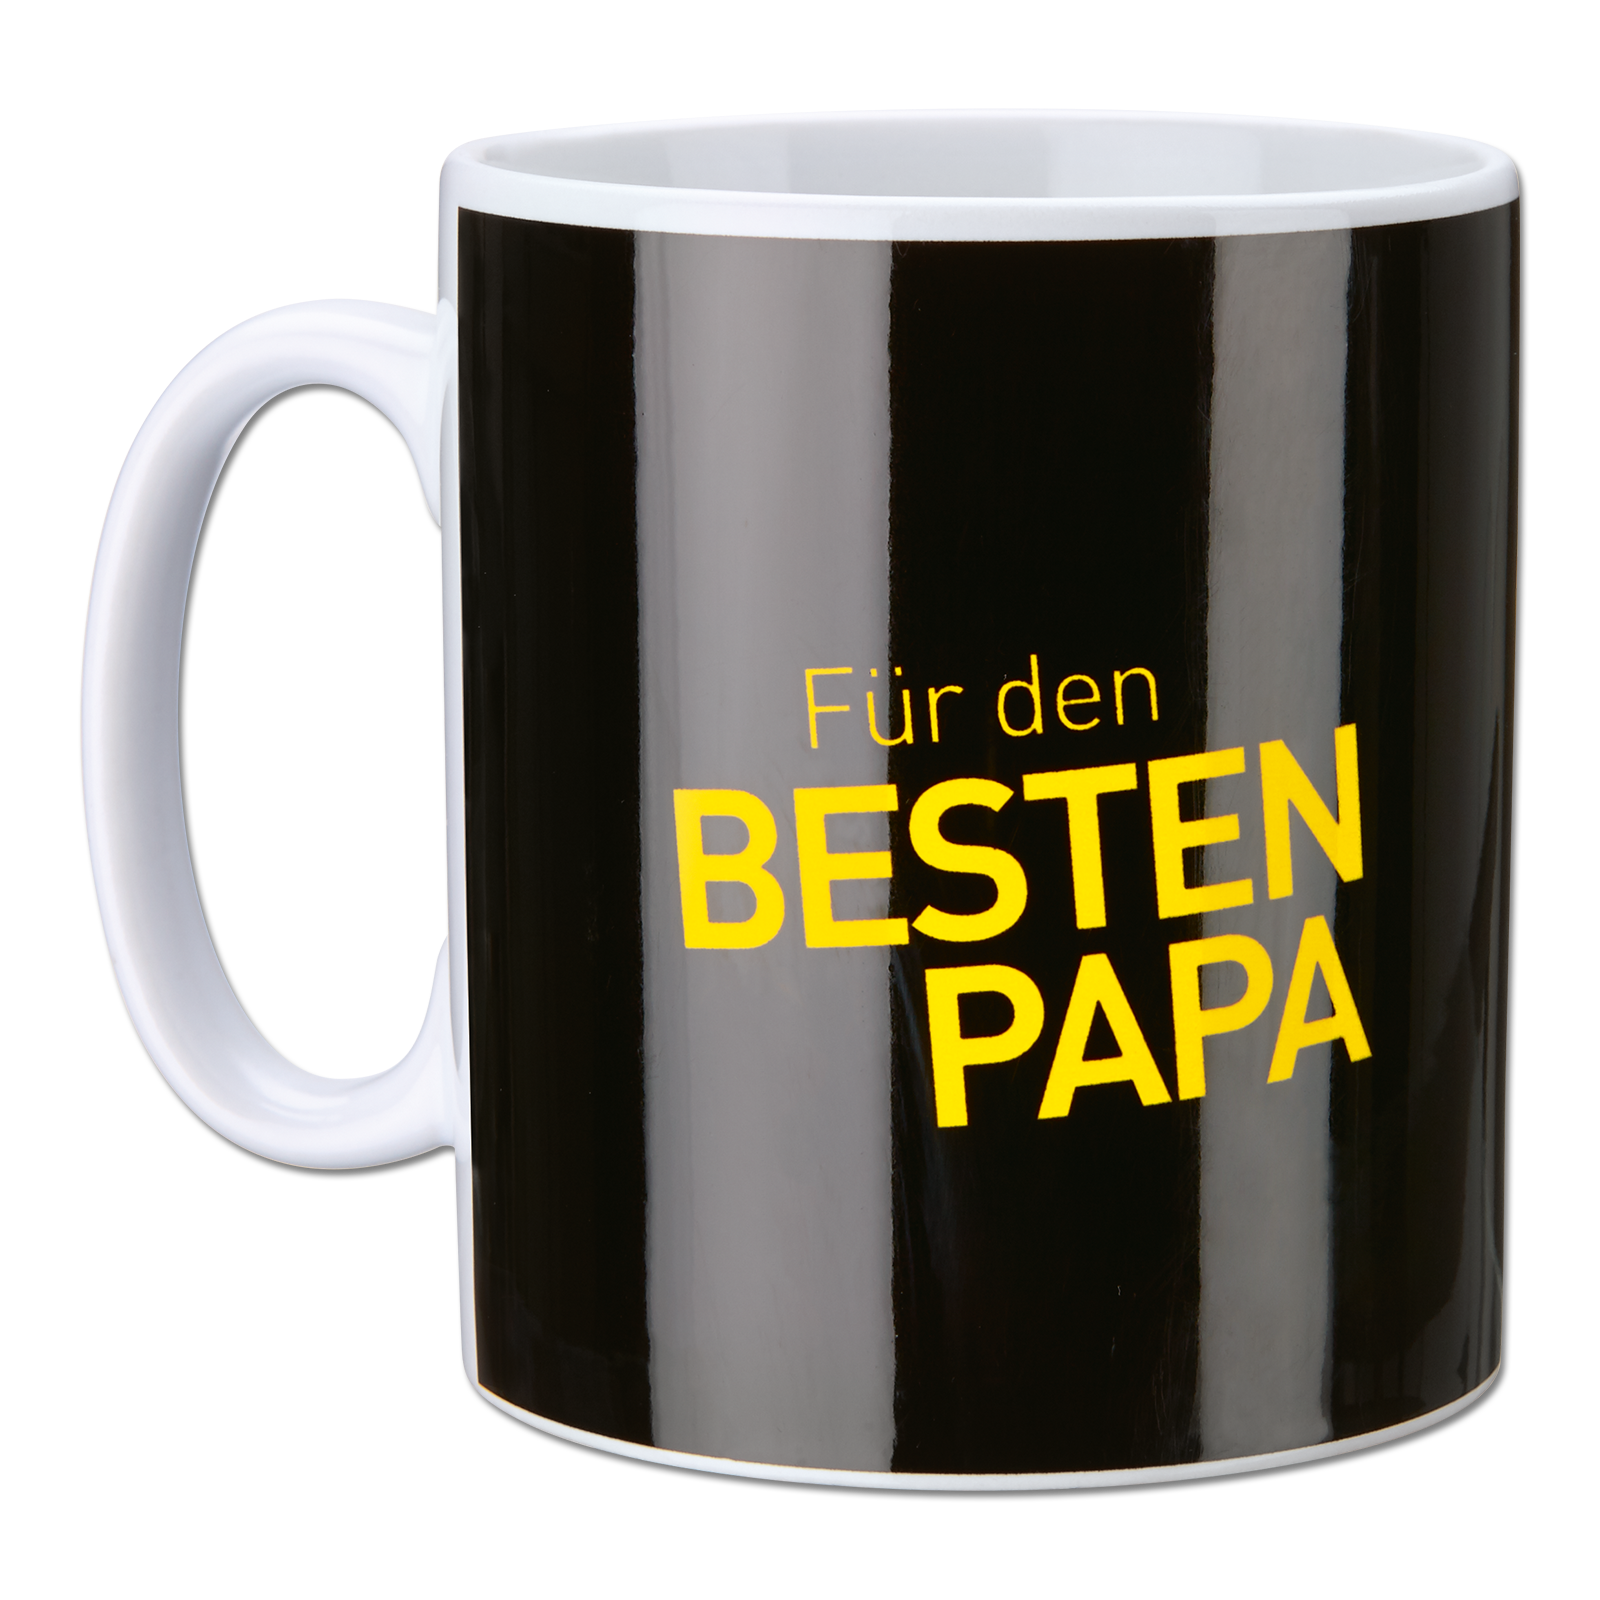 bvb papa sokratis fanartikel offizieller bvb fanshop offizieller bvb online fanshop. Black Bedroom Furniture Sets. Home Design Ideas